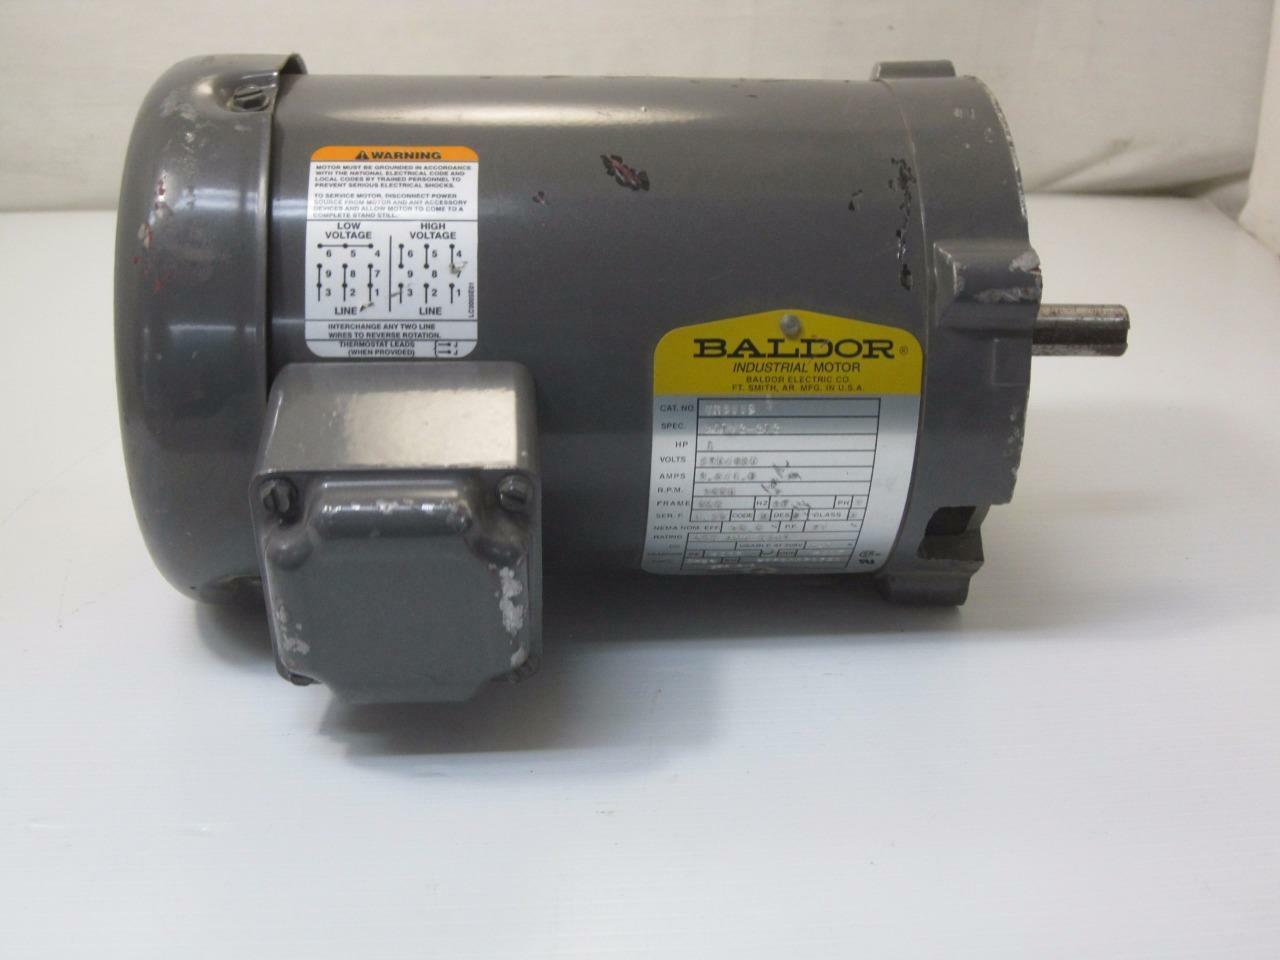 12383 Baldor Vm3115 Electric Motor 1hp 230 460v 3450 Rpm Frame 56c High Voltage And Low Wiring 1 Of 6only Available